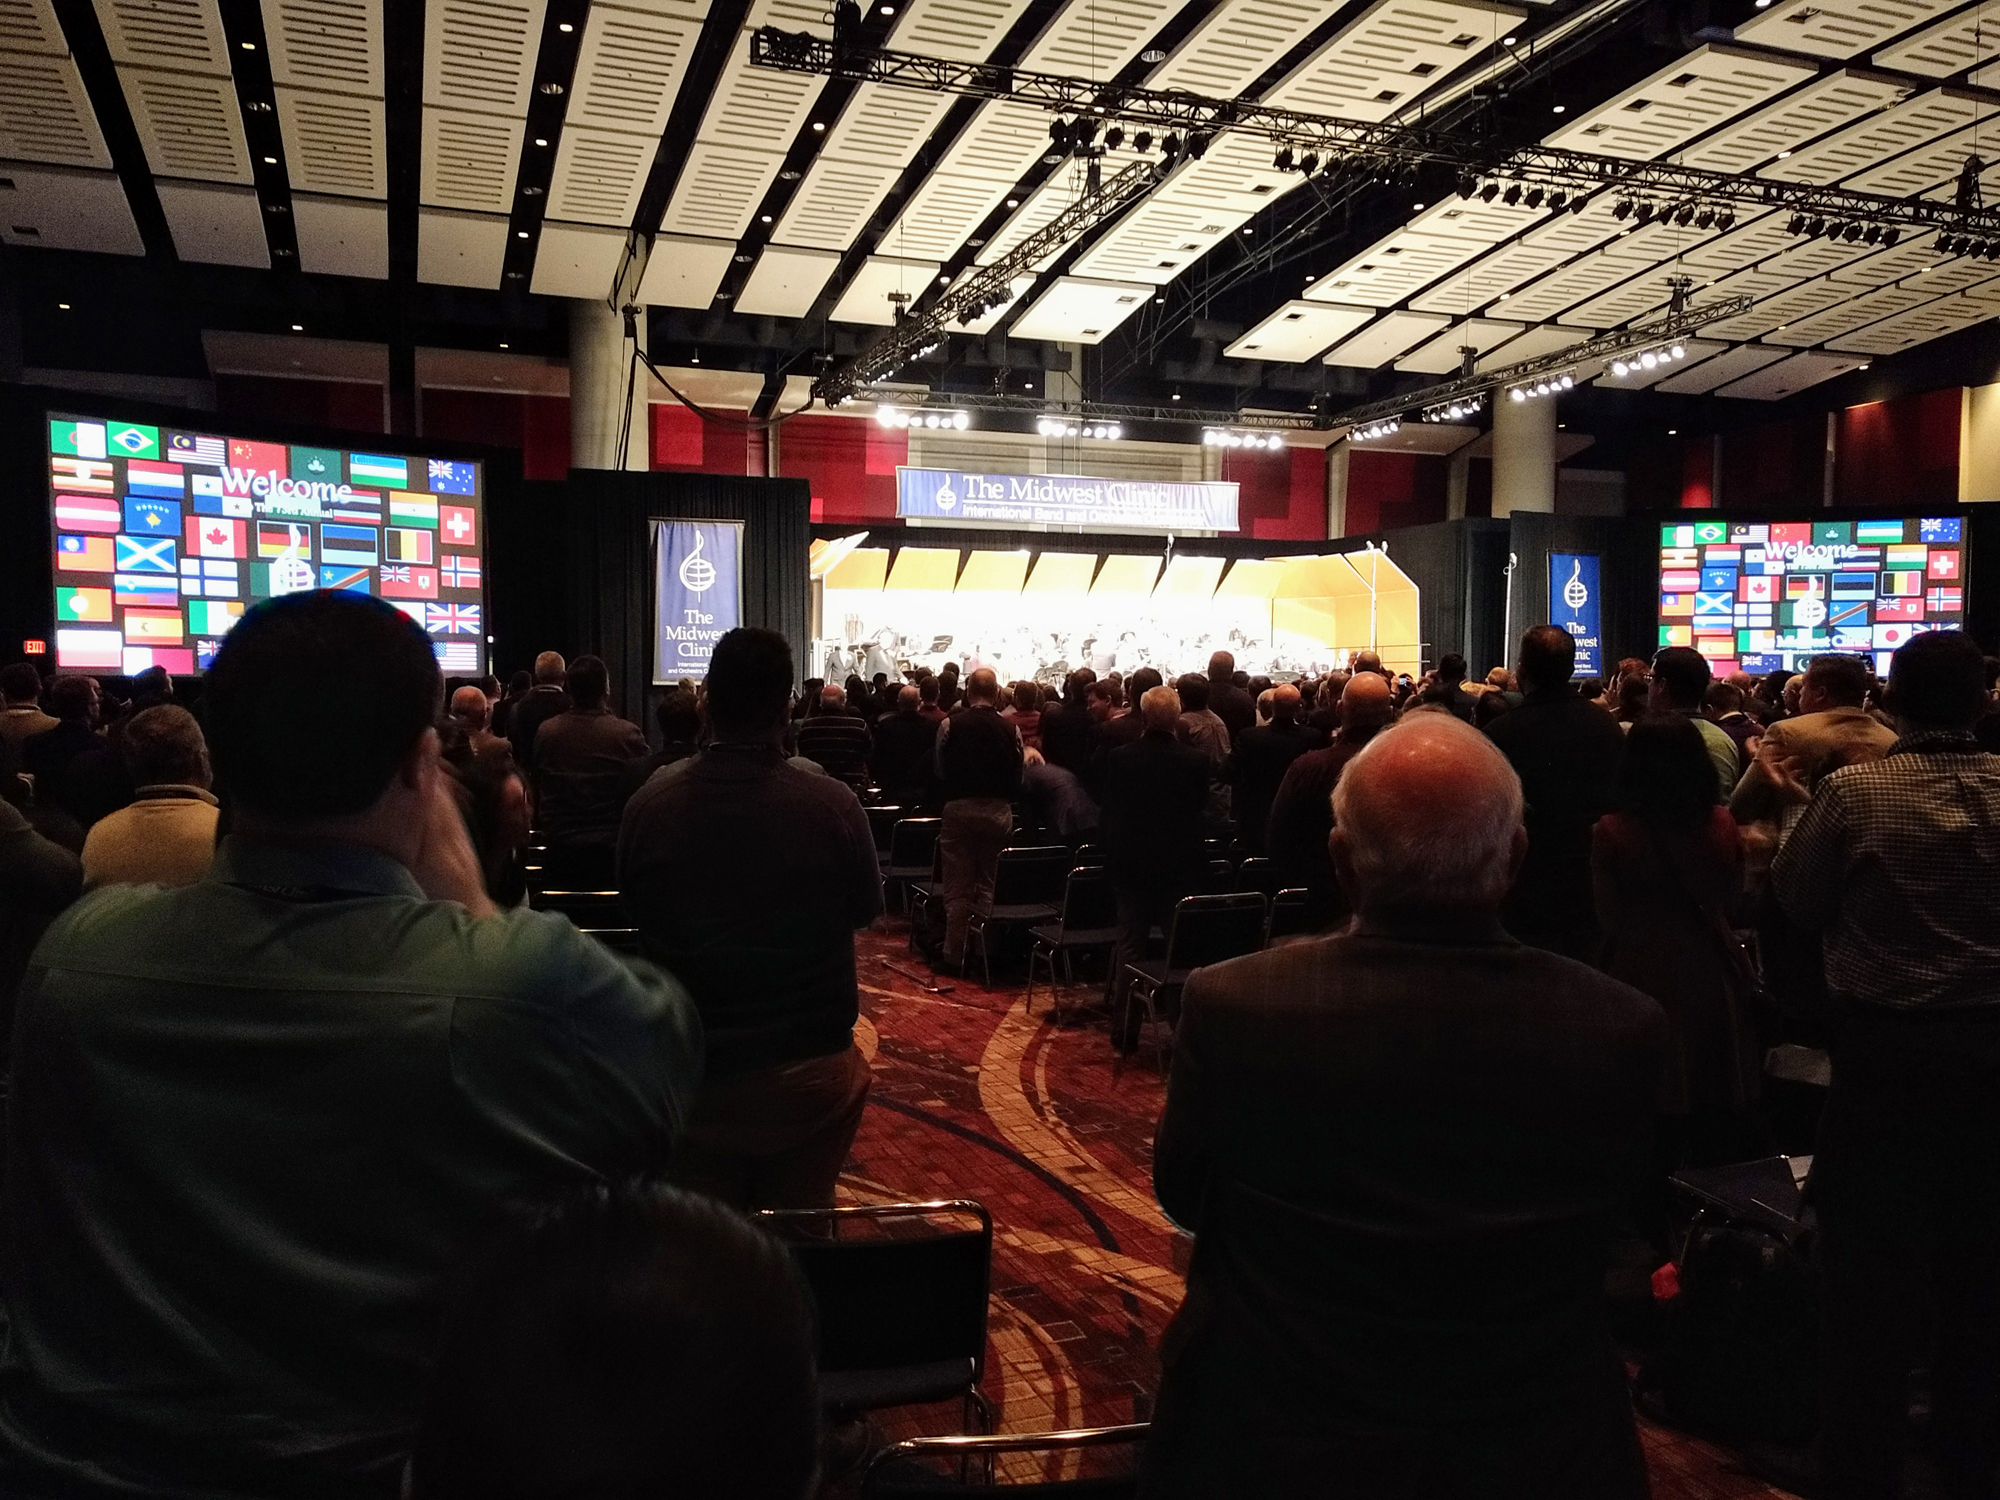 The audience applauding at the conclusion of a wind band concert at the 2019 Midwest Clinic at McCormick Place in Chicago. Signage includes a composite image of flags from all over the world reflecting the nationalities of this year';s performing ensembles.